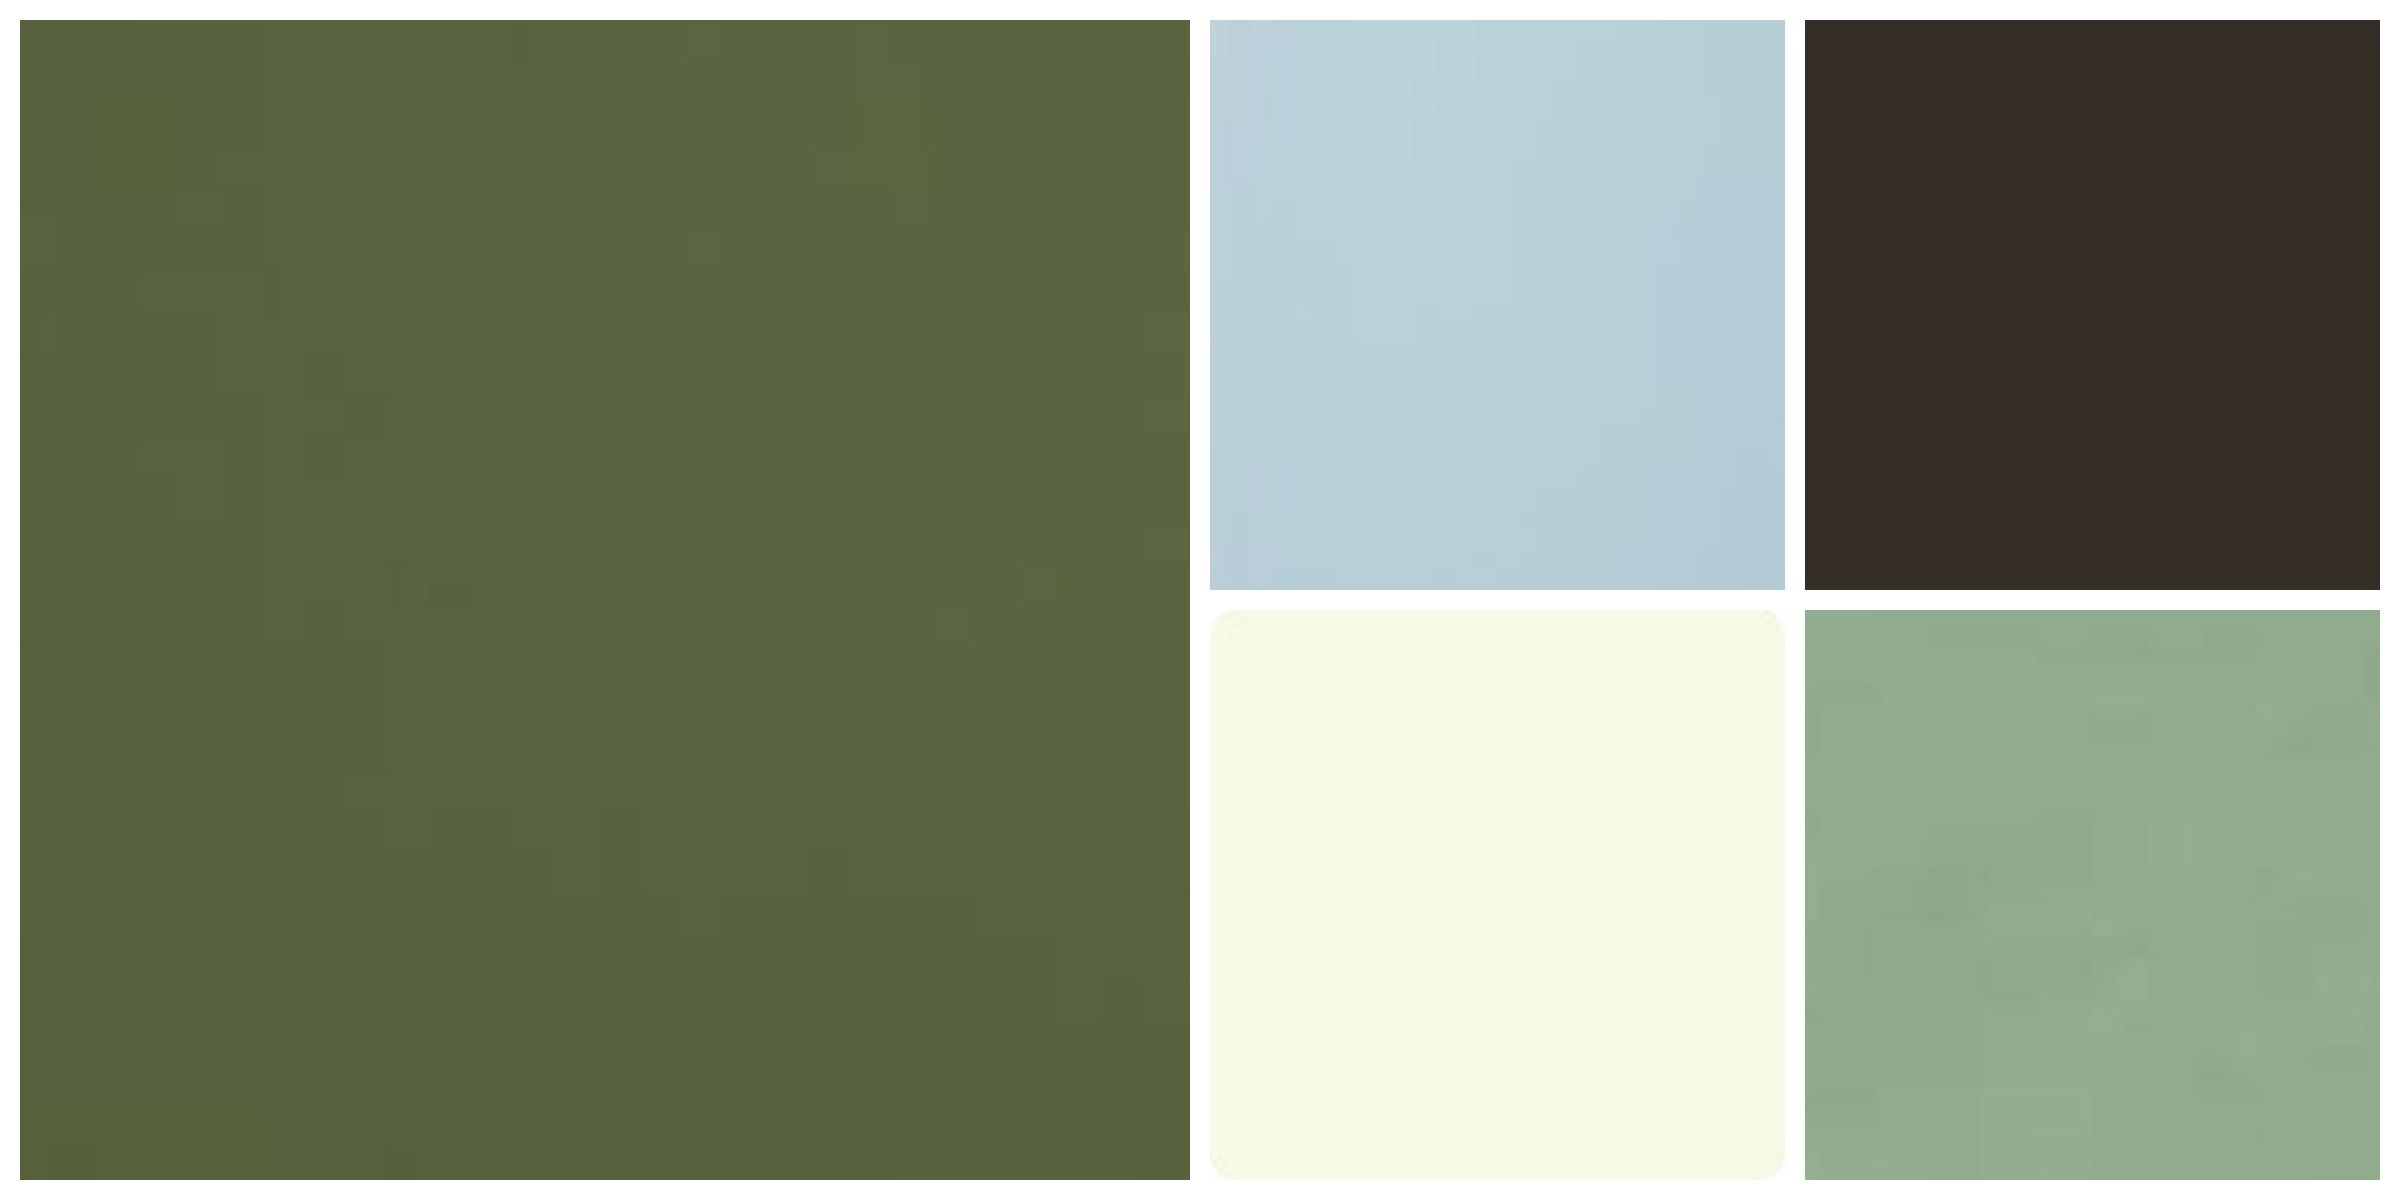 My Color Palette Army Green, Sage Green, Light Cream, Early